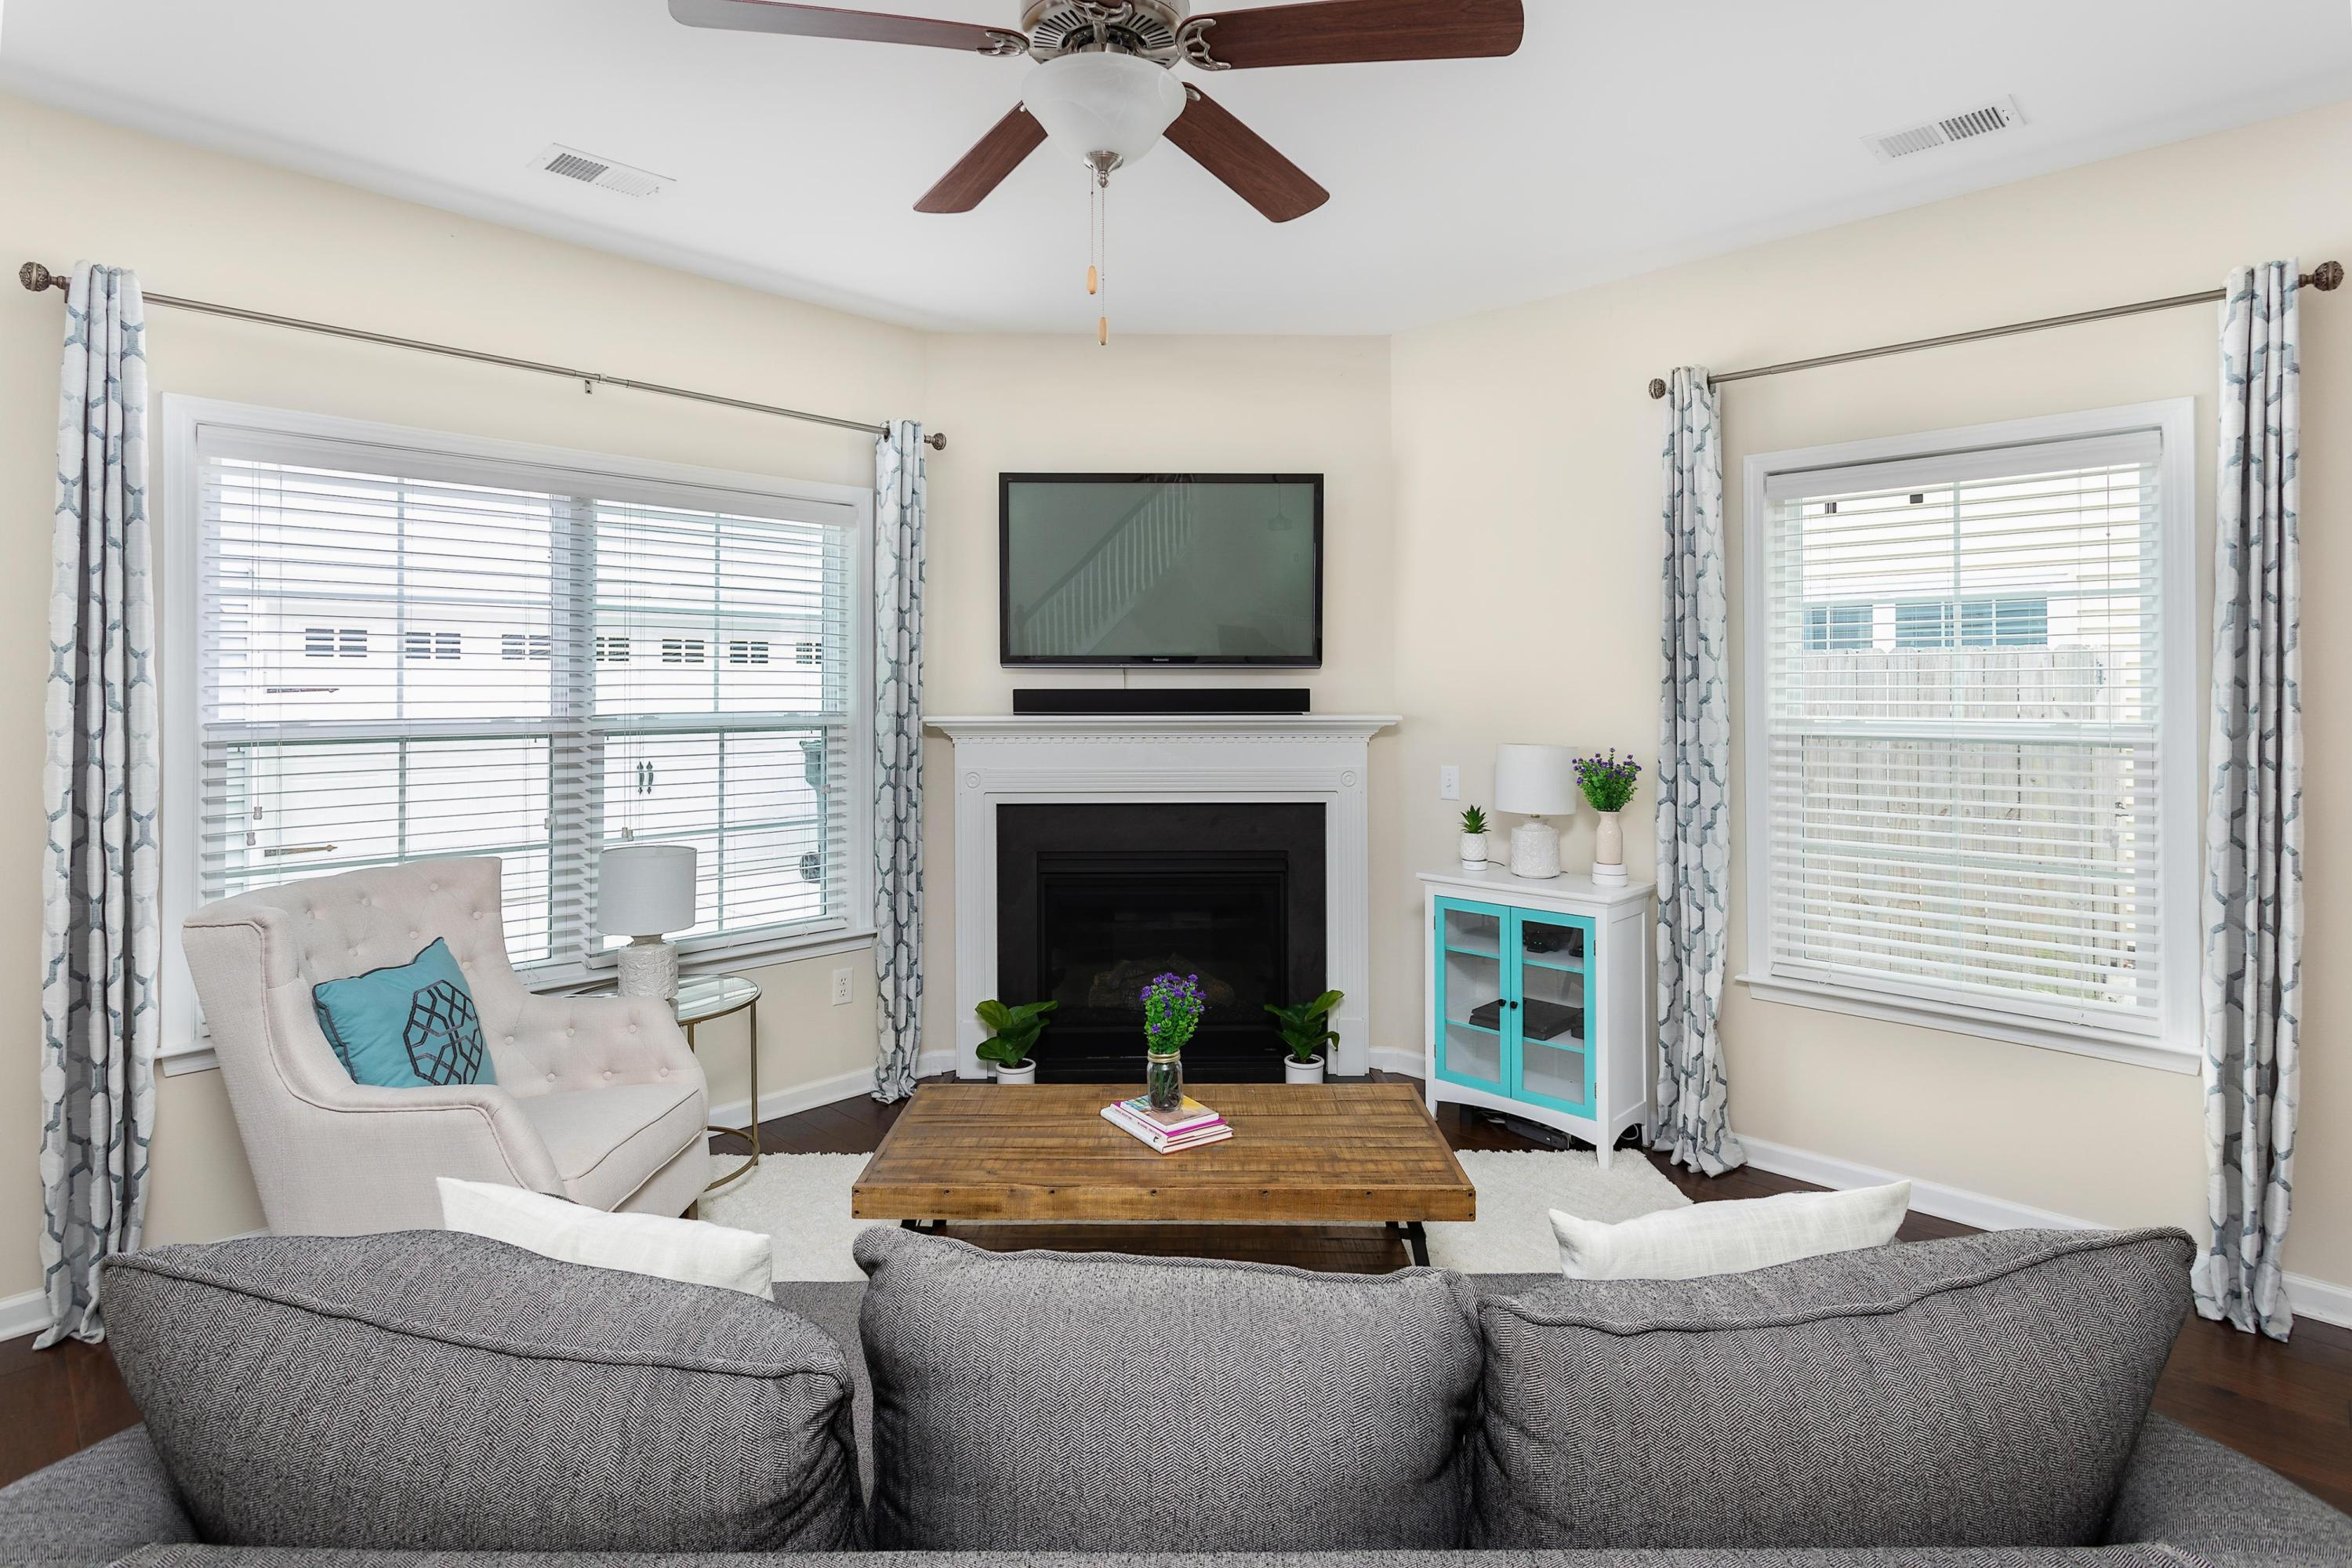 The Cottages at Johns Island Homes For Sale - 1821 Towne, Johns Island, SC - 10